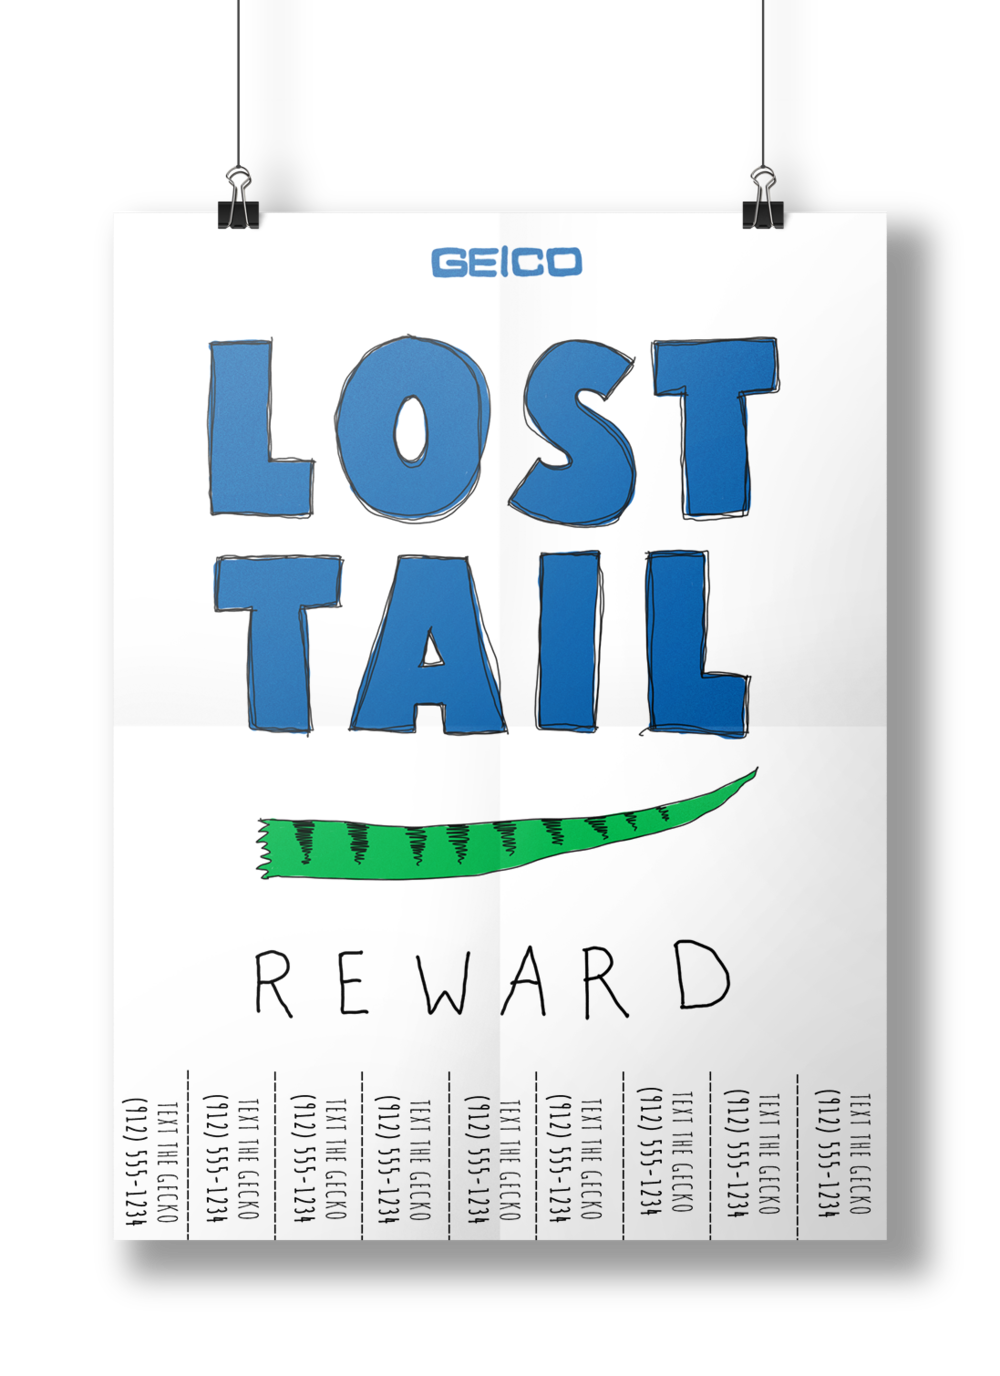 Lost-Tail-Title.png